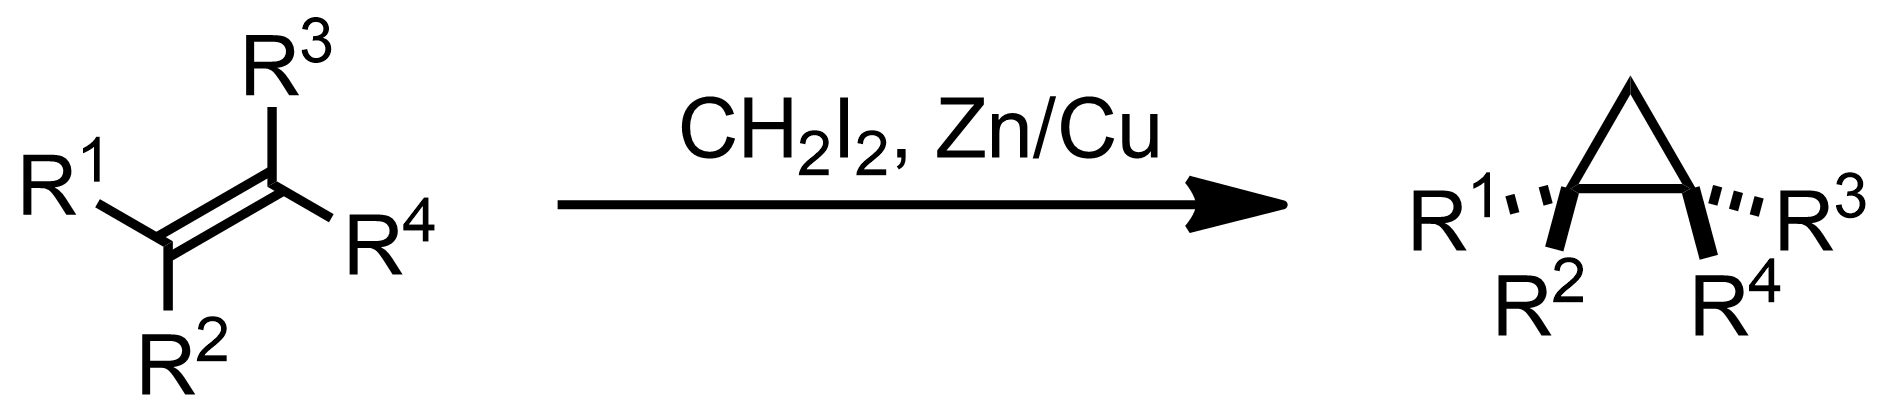 Schematic representation of the Simmons-Smith Reaction.